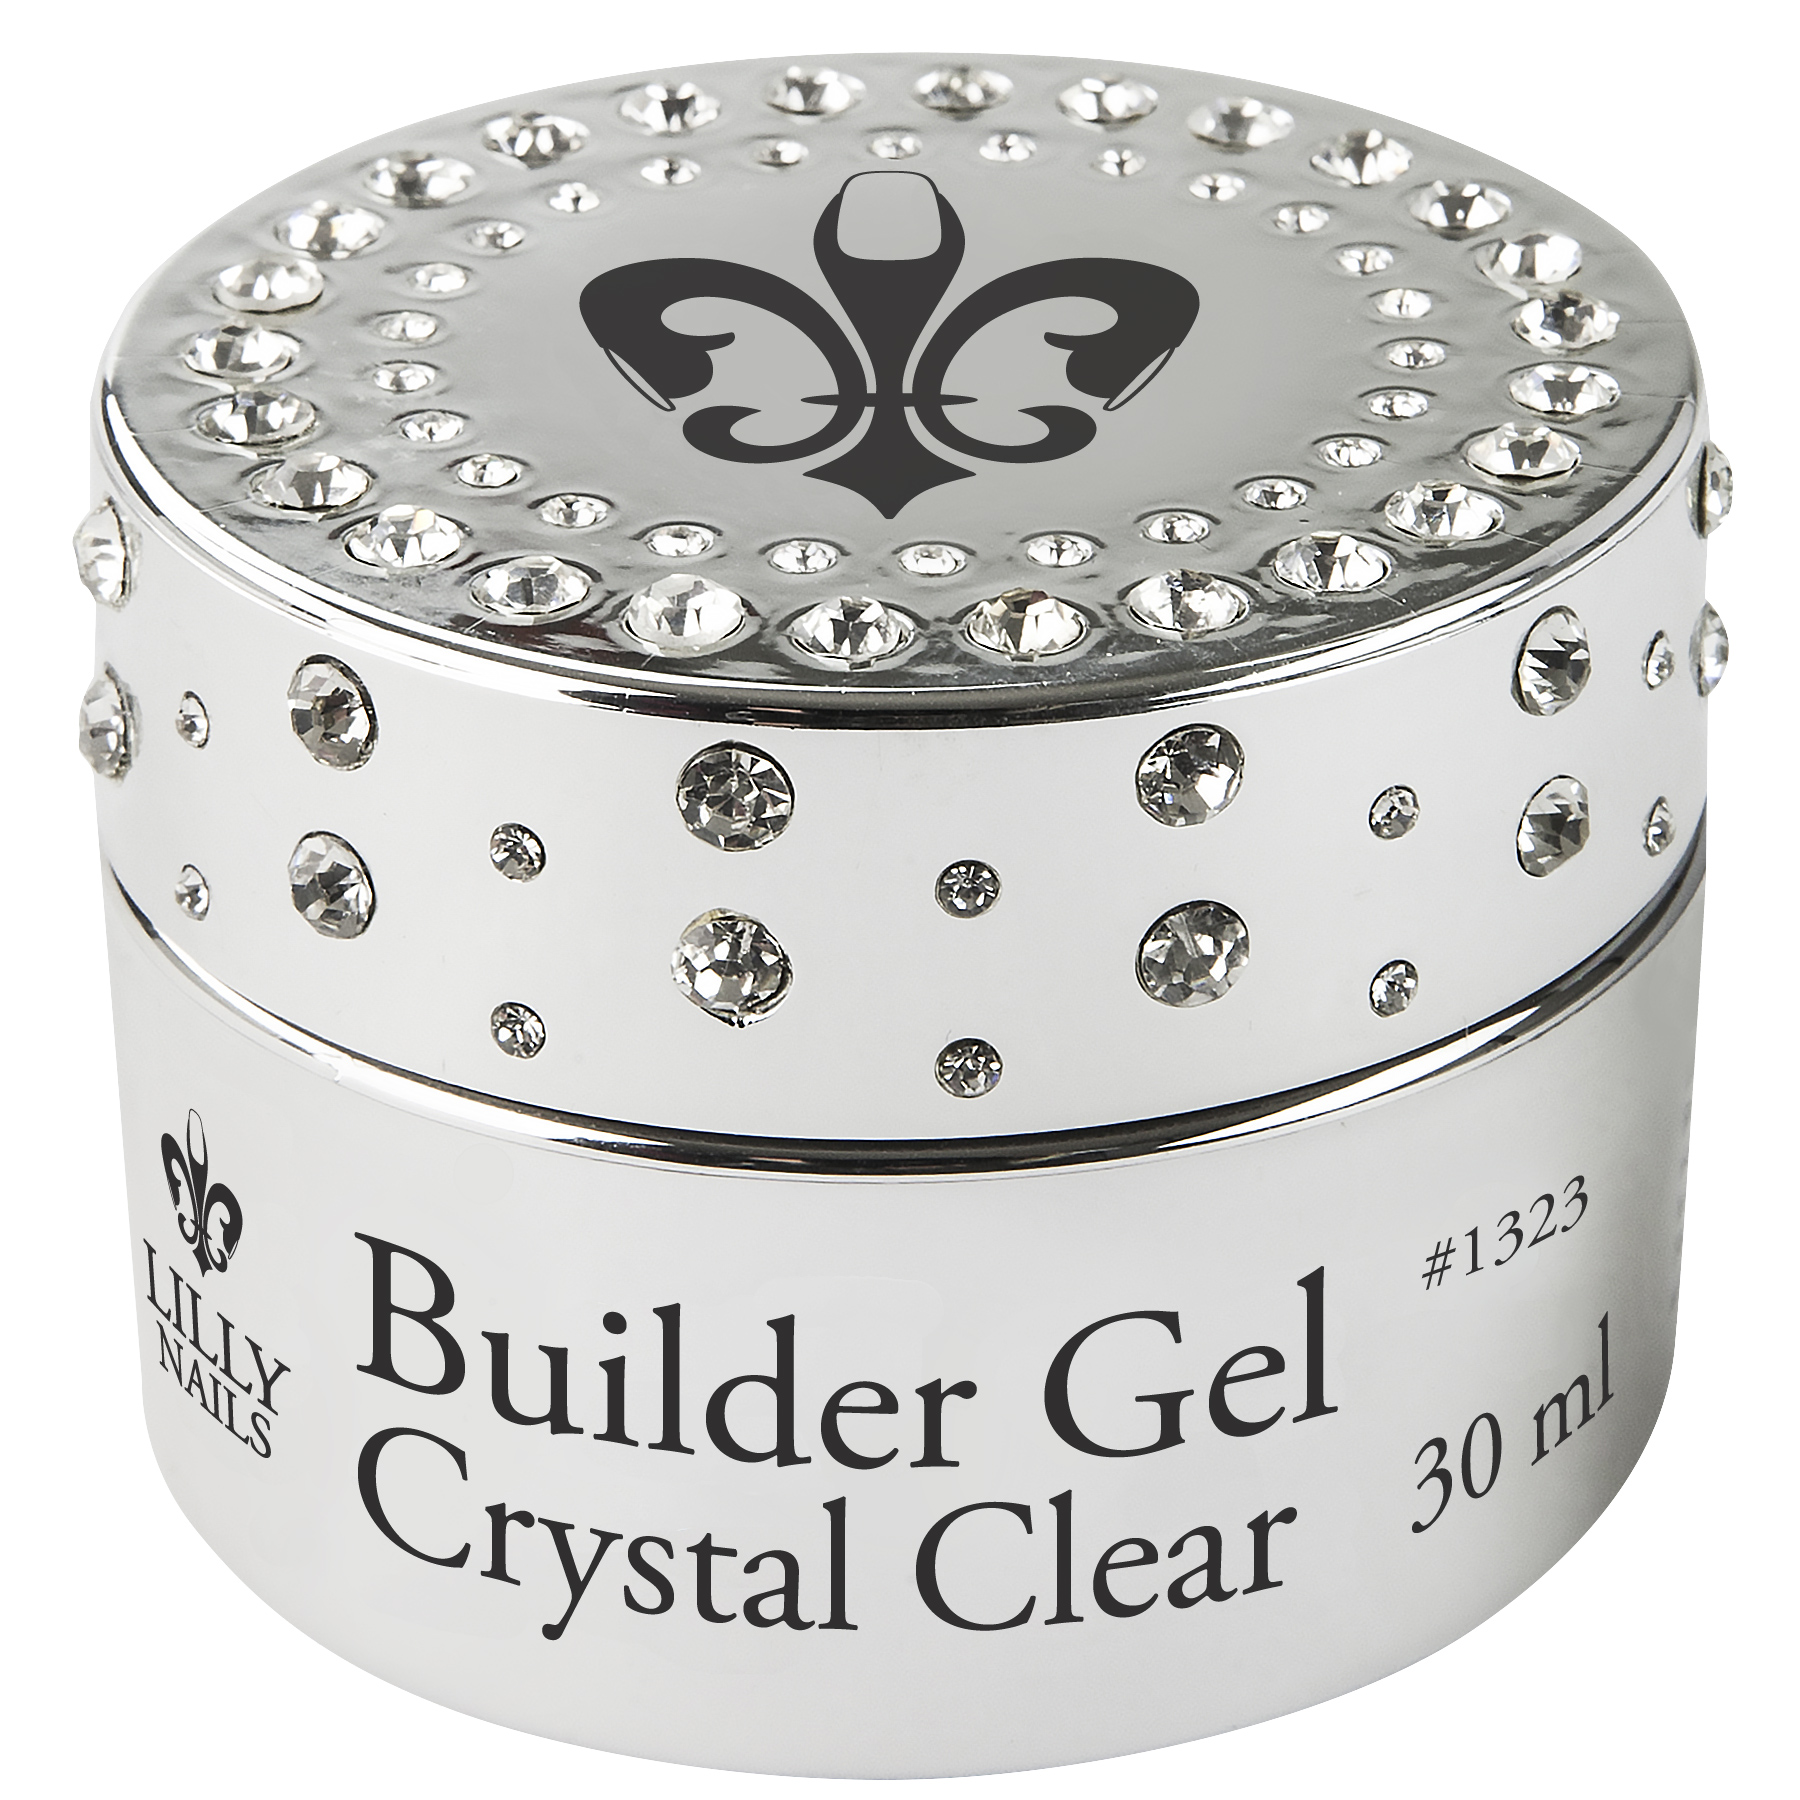 Builder Gel Crystal Clear